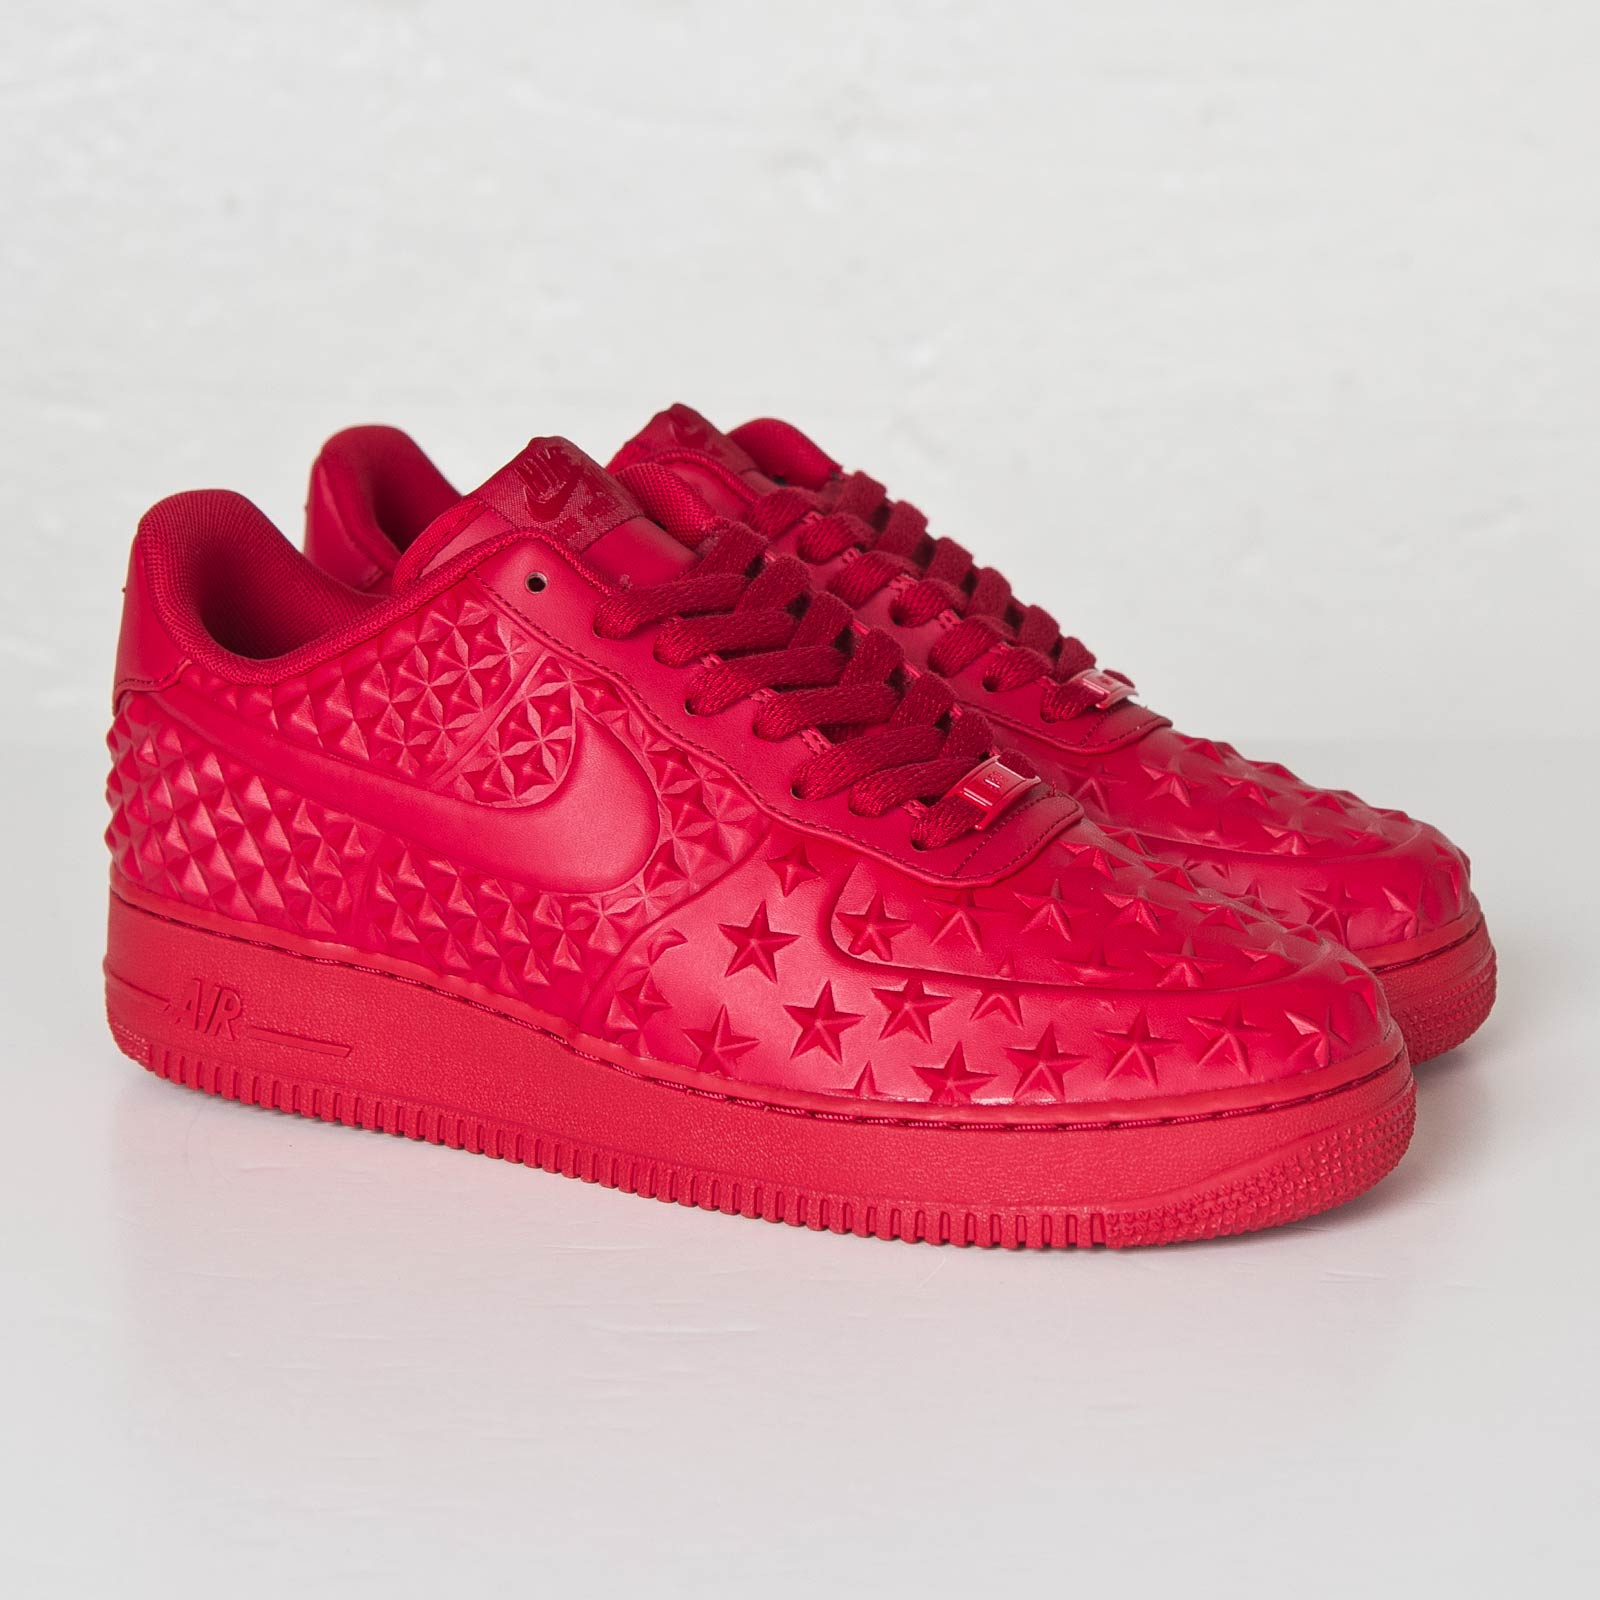 Nike Air Force 1 Lv8 VT 789104 600 Sneakersnstuff